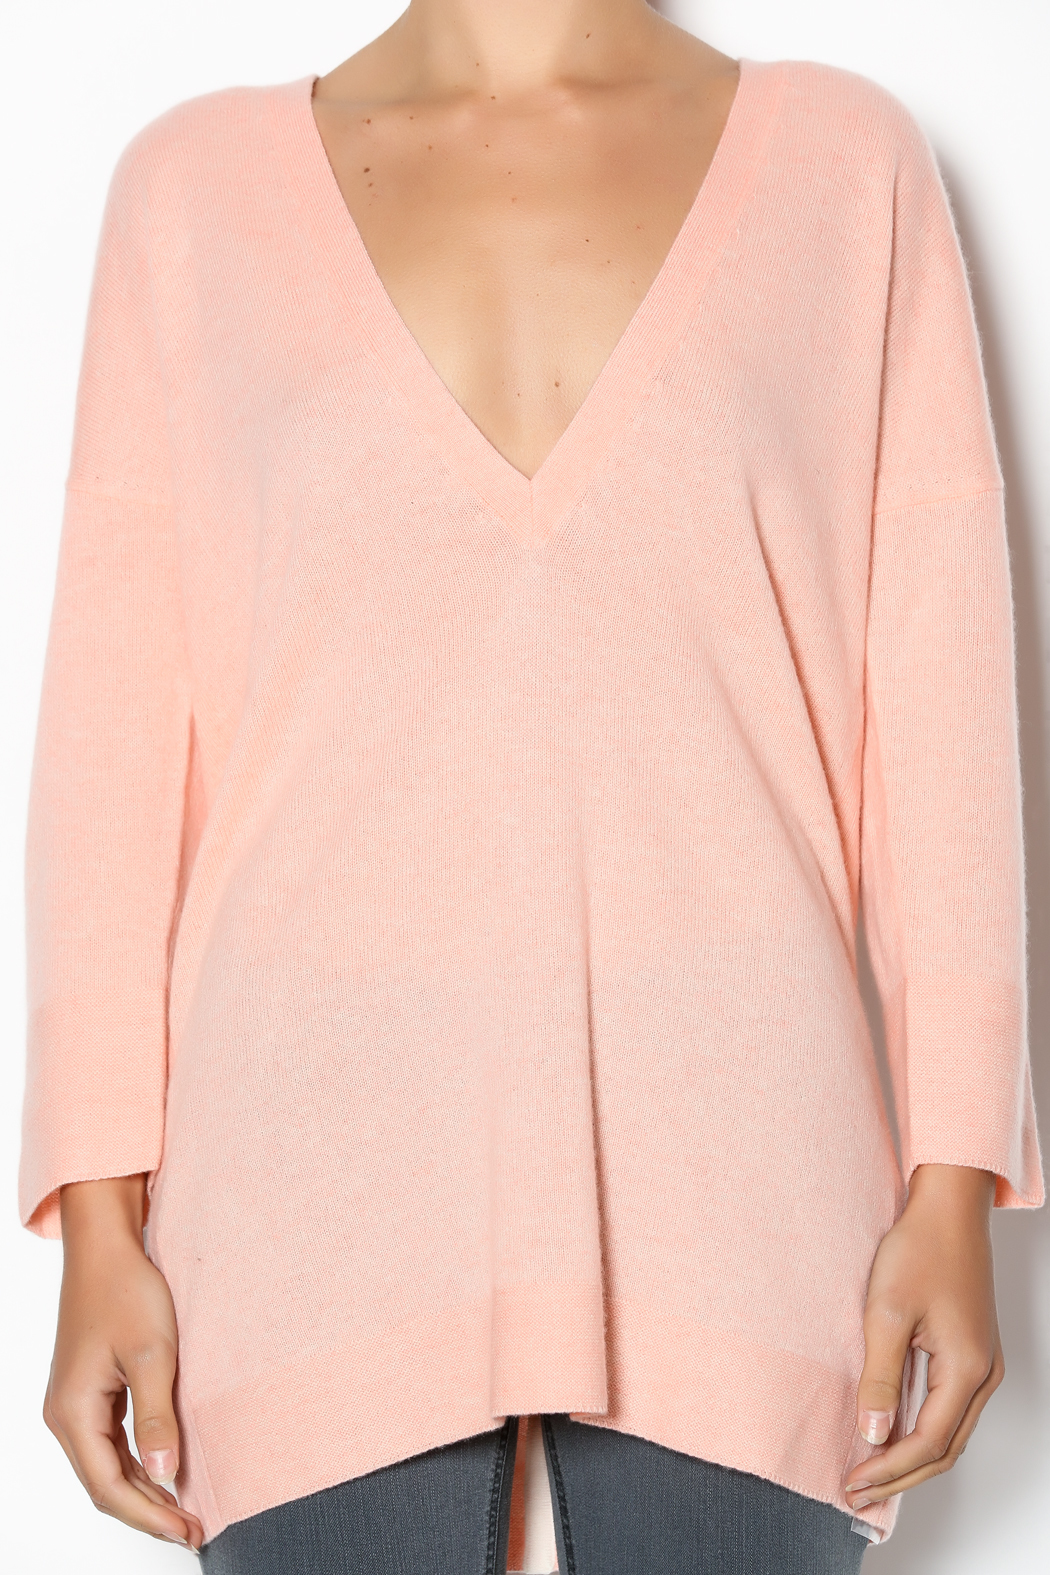 Duffy Peach Cashmere Sweater from Pennsylvania by Tish Boutique ...